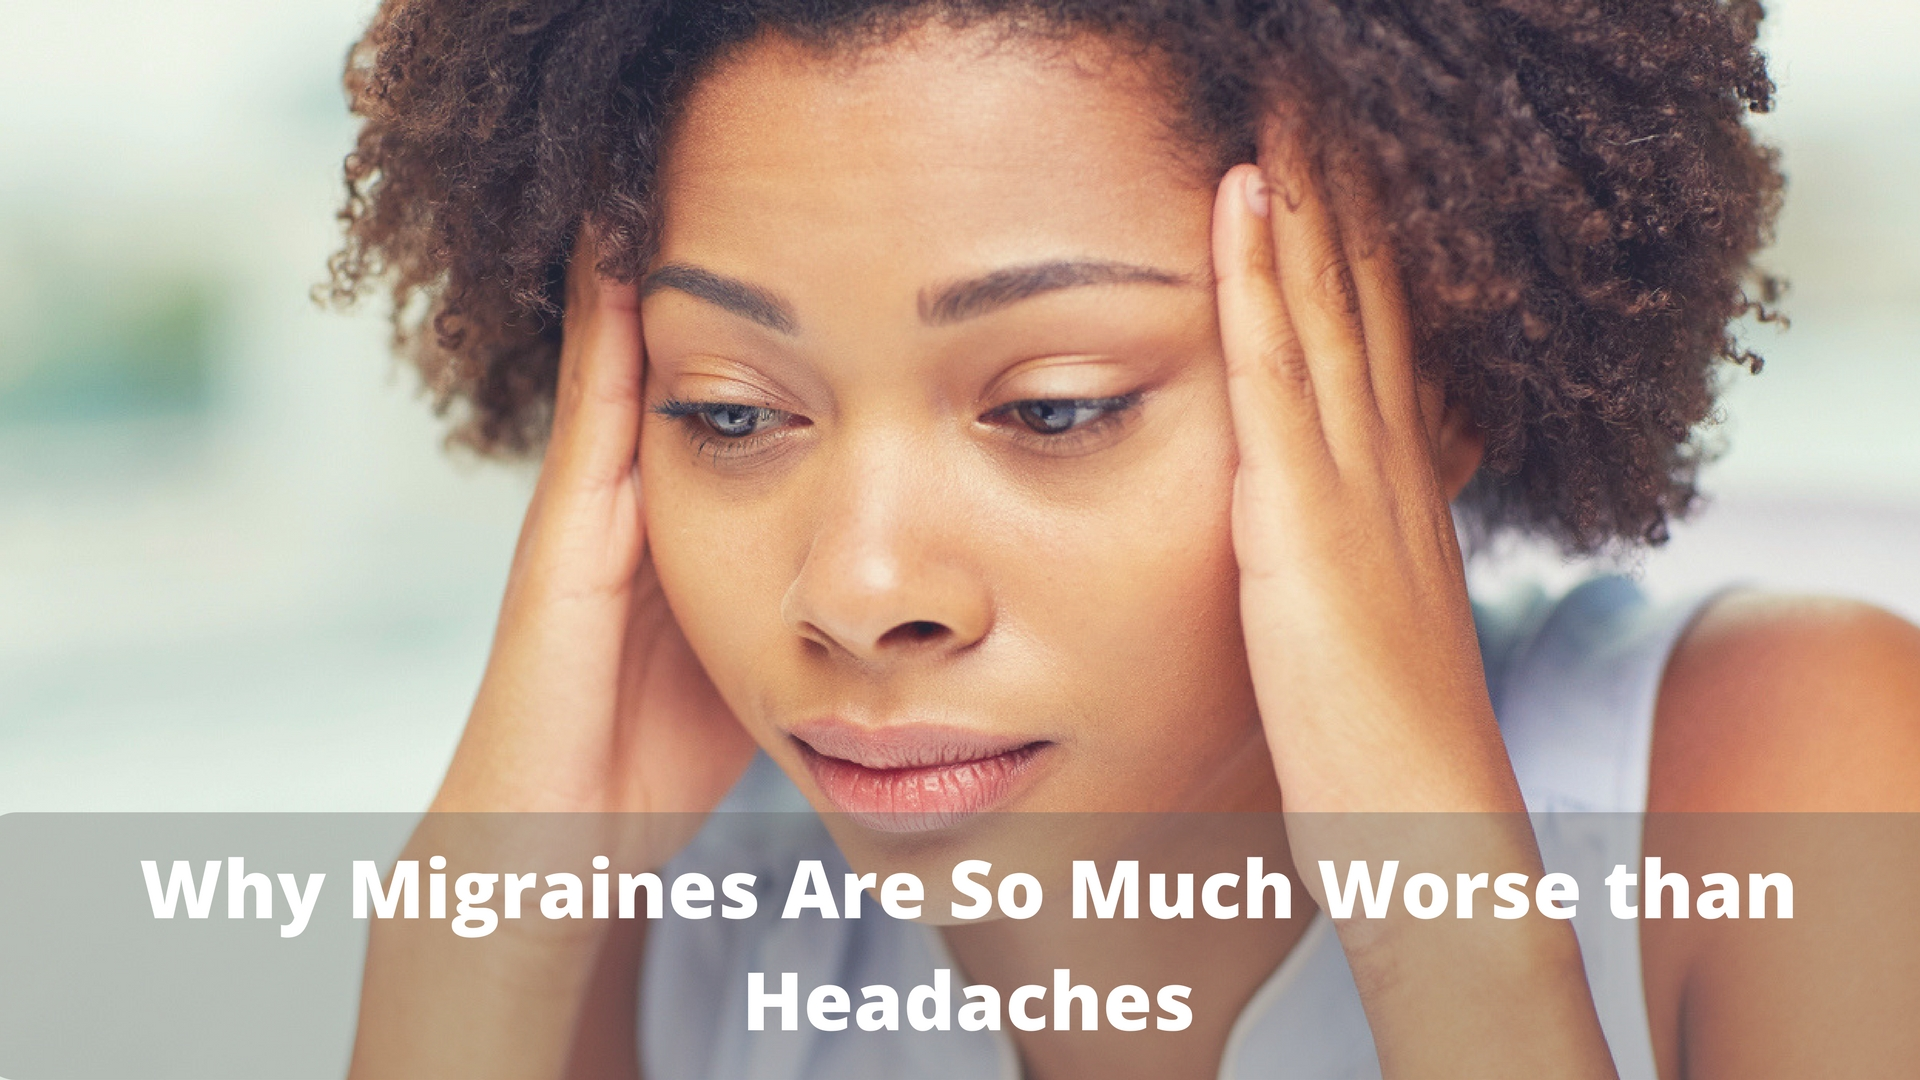 Woman suffering from a migraine headache at work